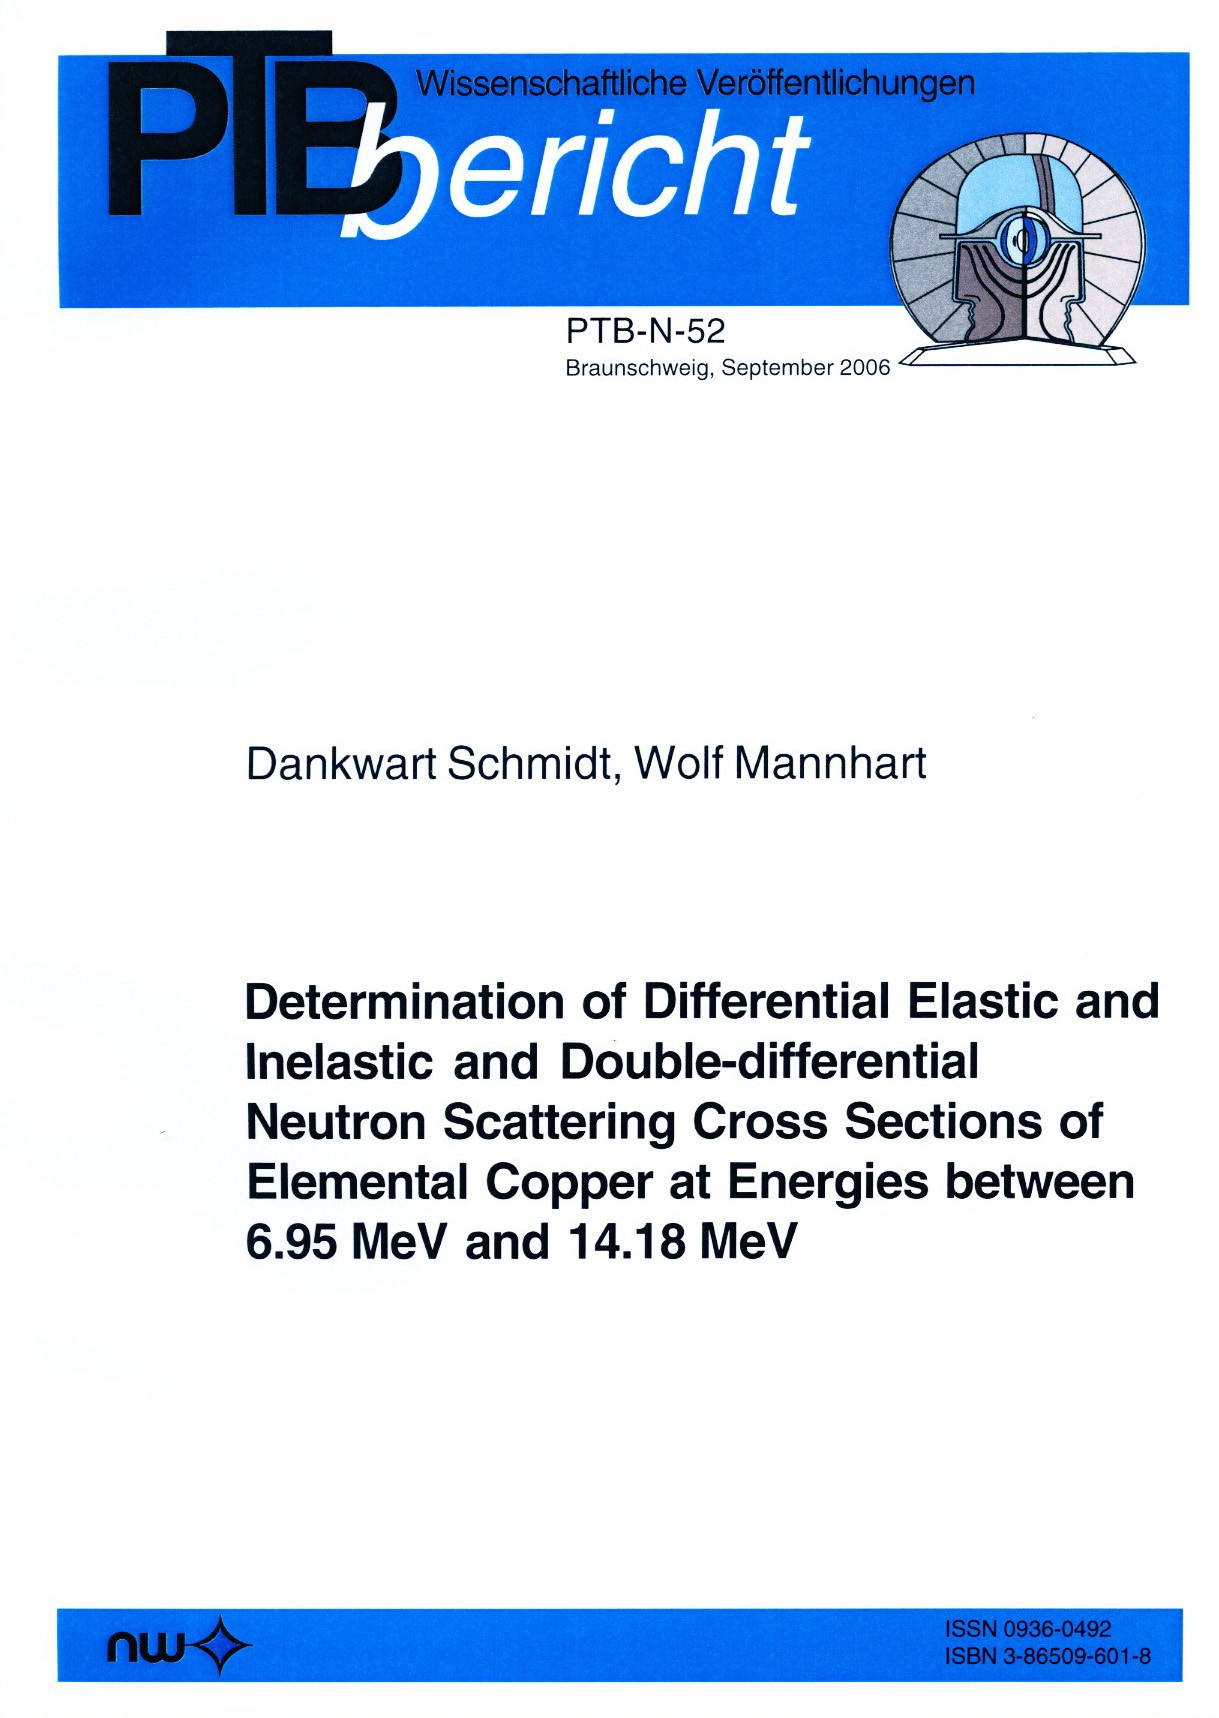 Determination of Differential Elastic and Inelastic and Double-differential Neutron Scattering Cross Sections of Elemental Copper at Energies between 6.95 MeV and 14.18 MeV